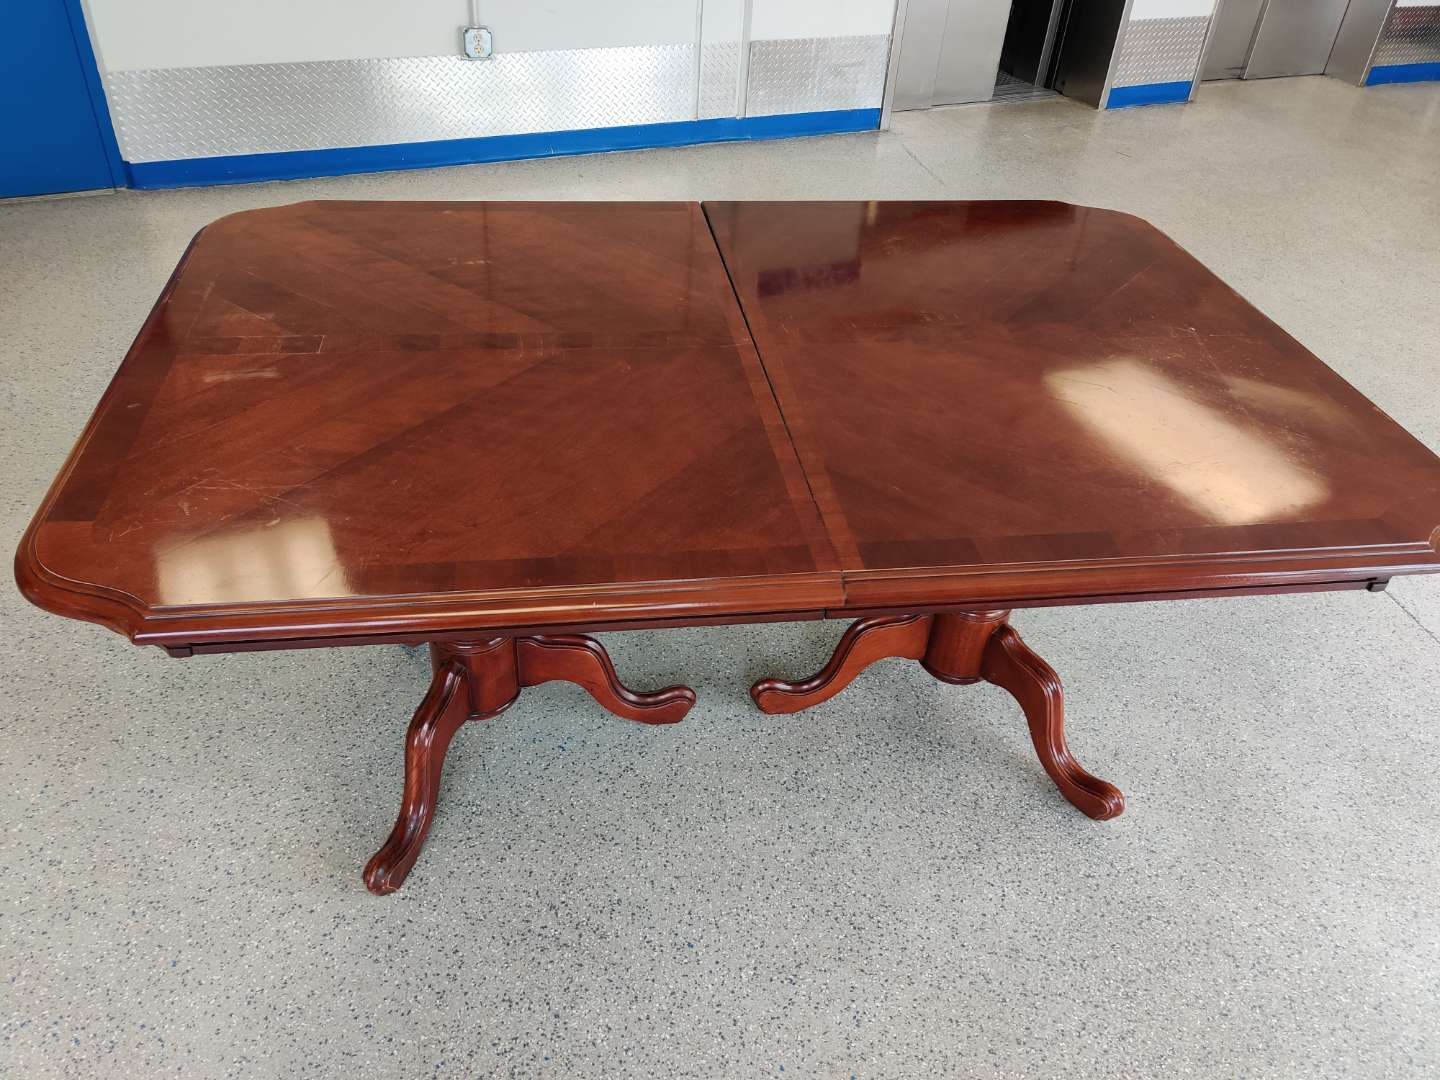 # 160 Lexington furniture dining room table with two leaves top is kind of rough got some scratches and it is separated tw